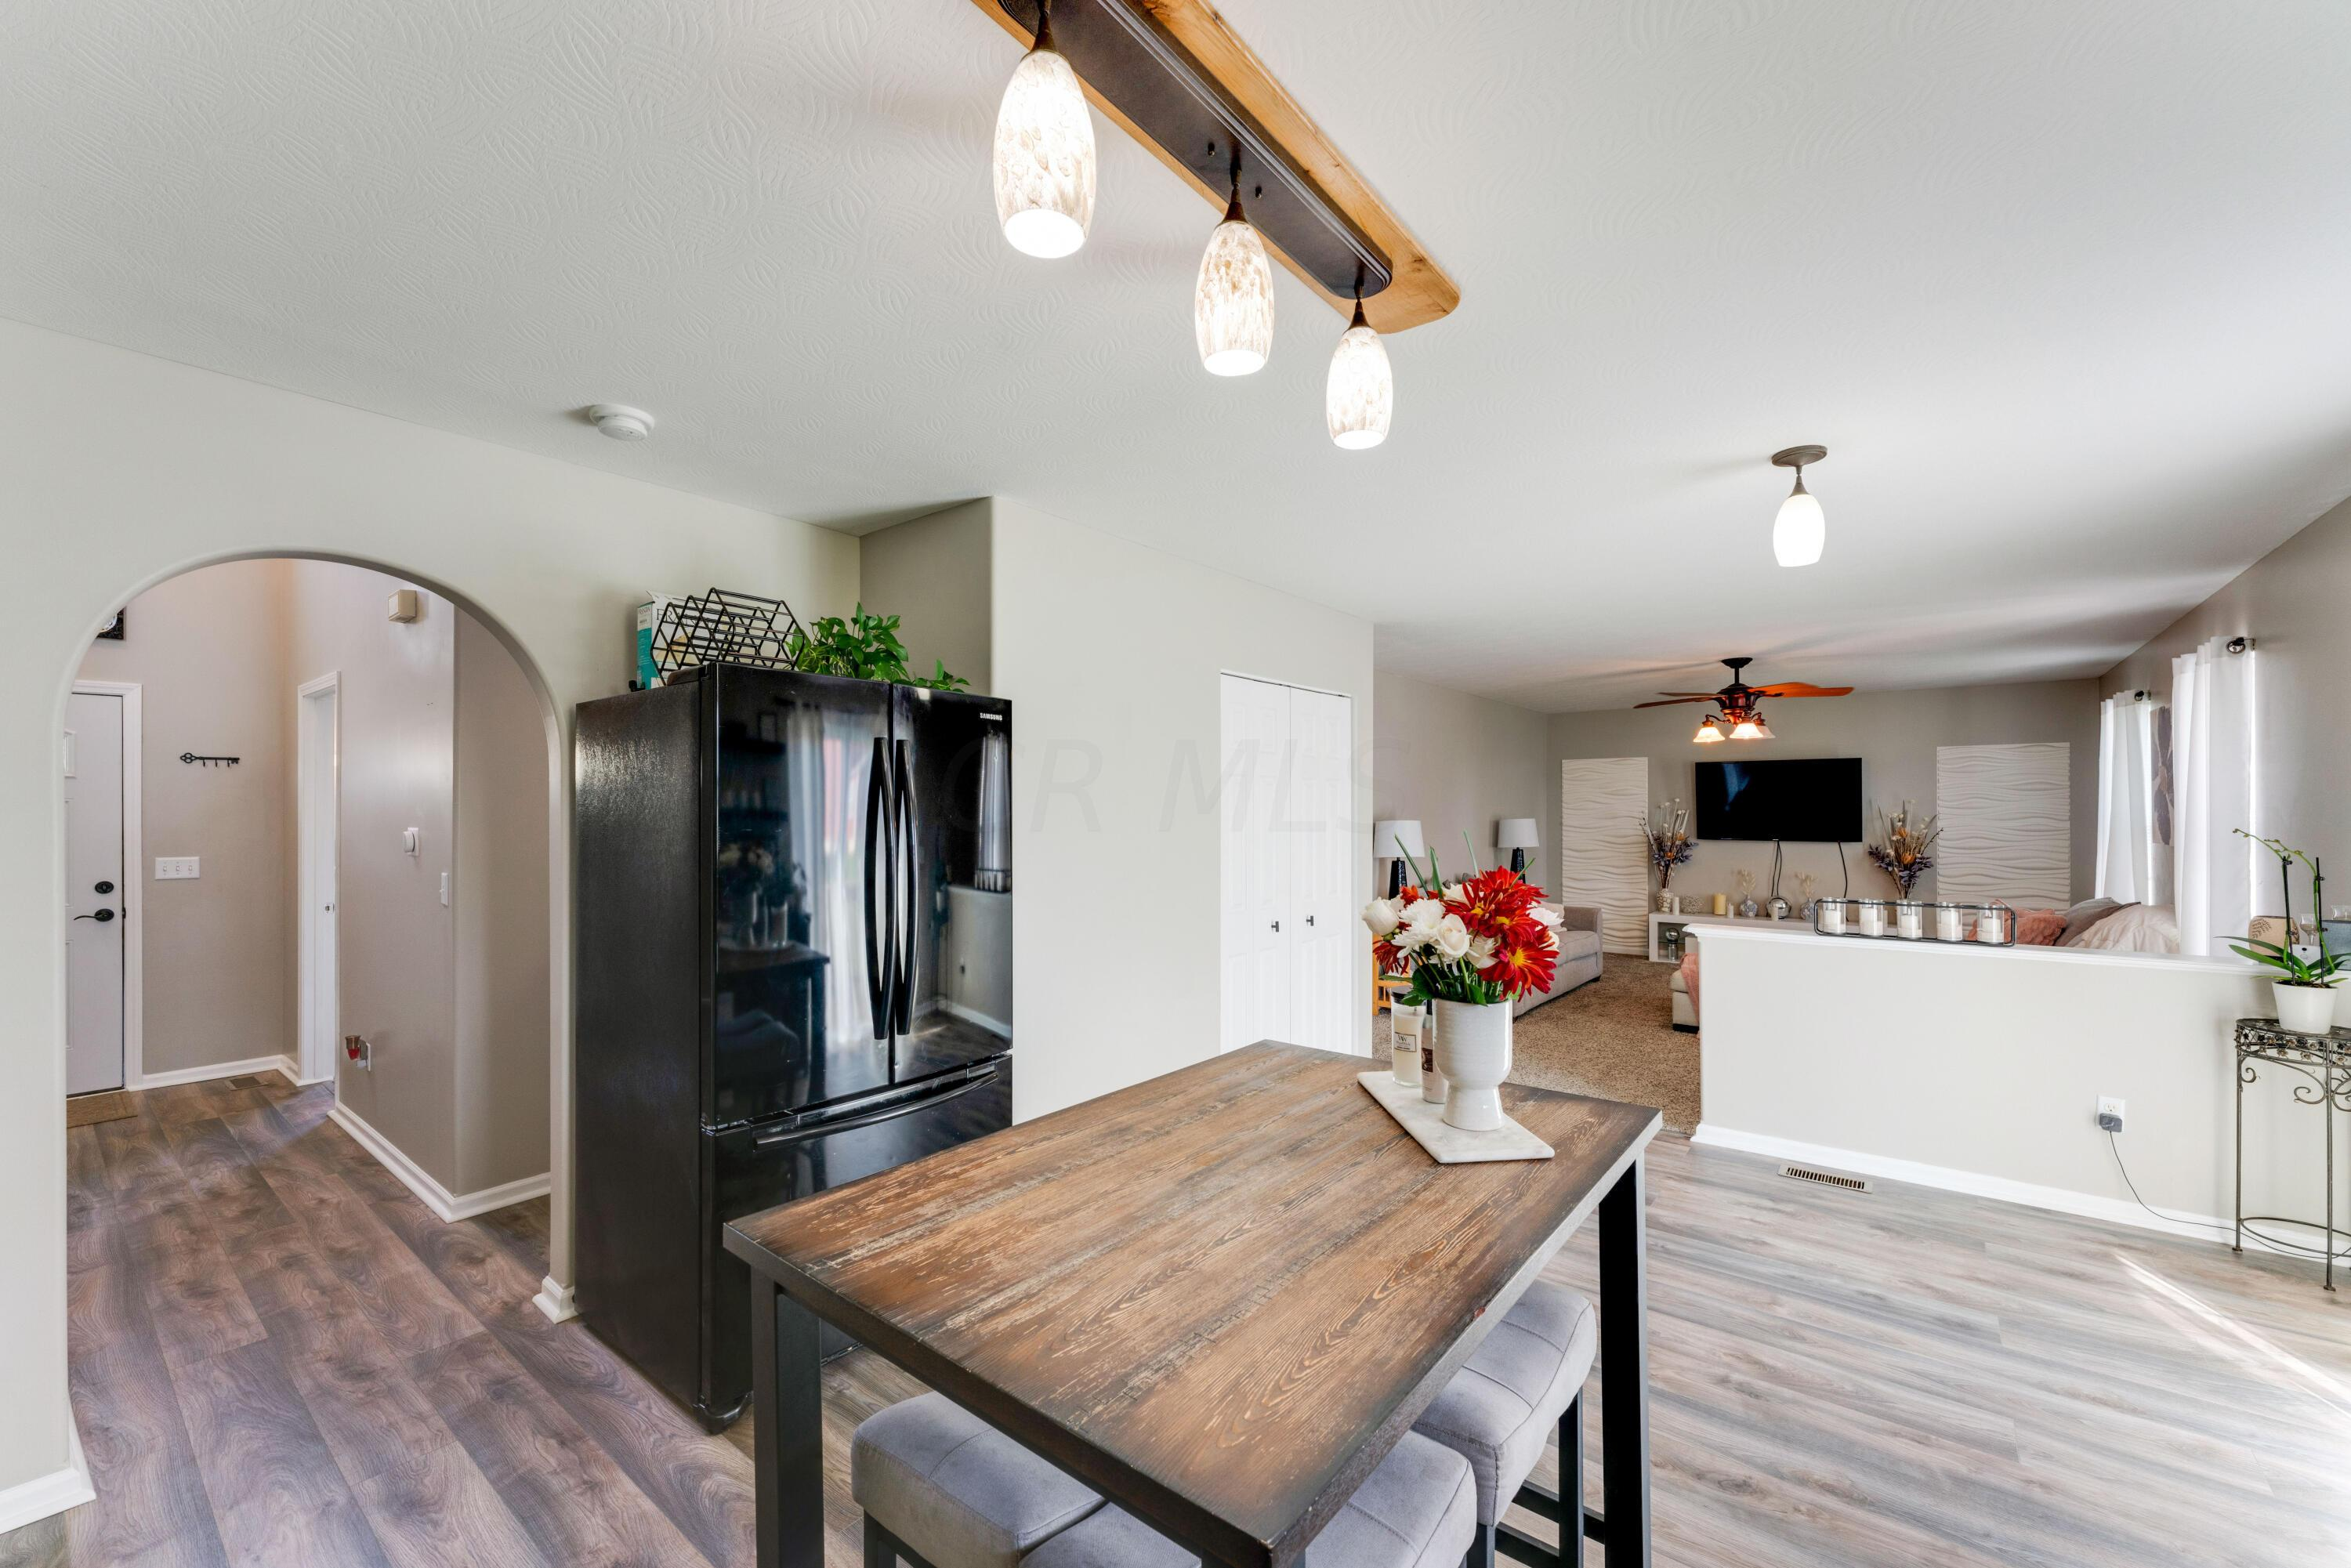 Kitchen/ Eating Space